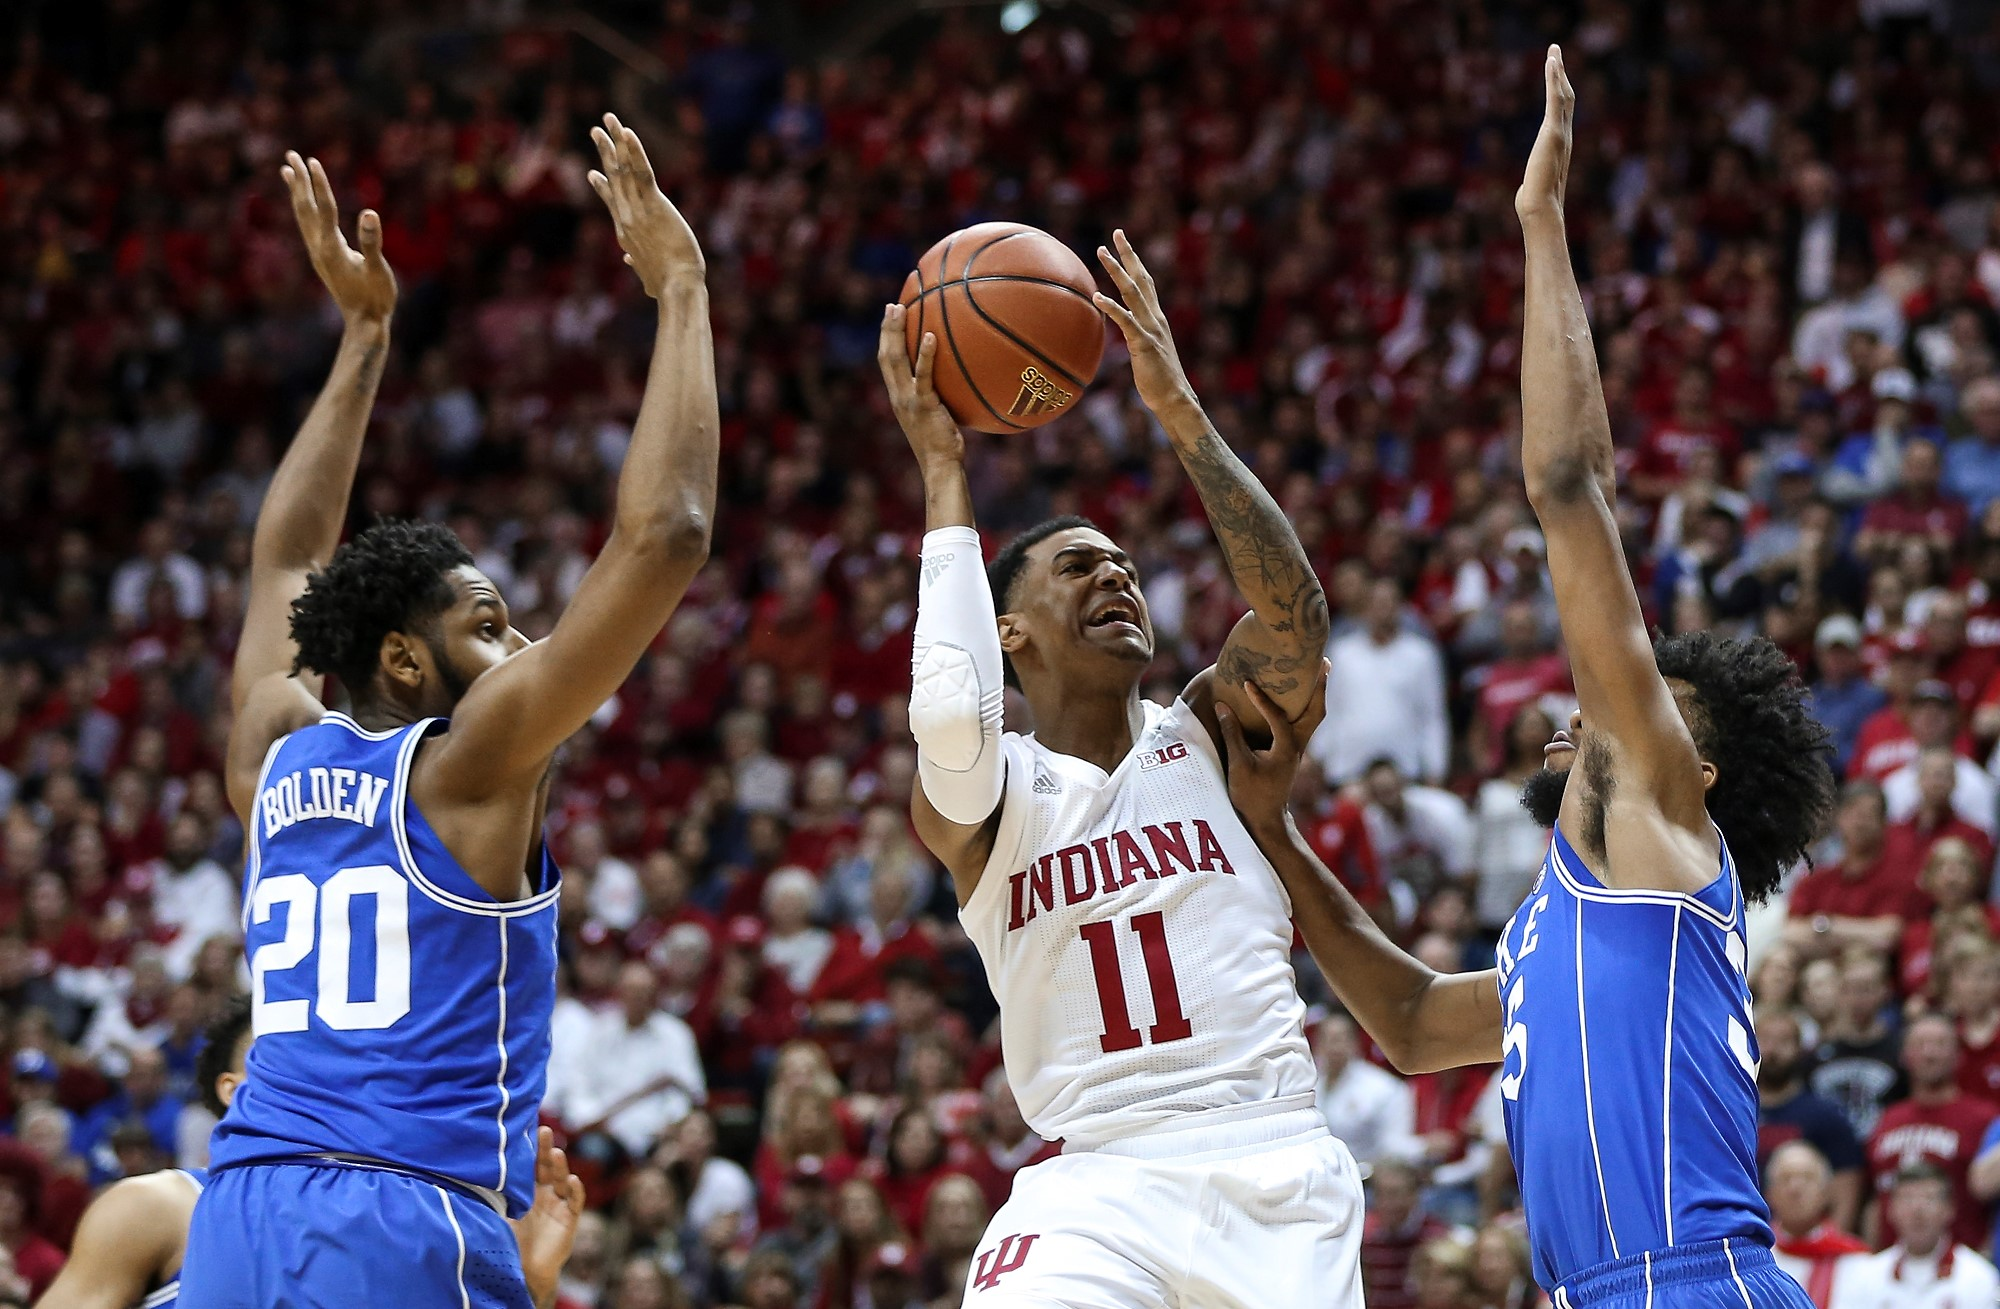 hoosiers to play duke in 2018 big ten/acc challenge - indiana